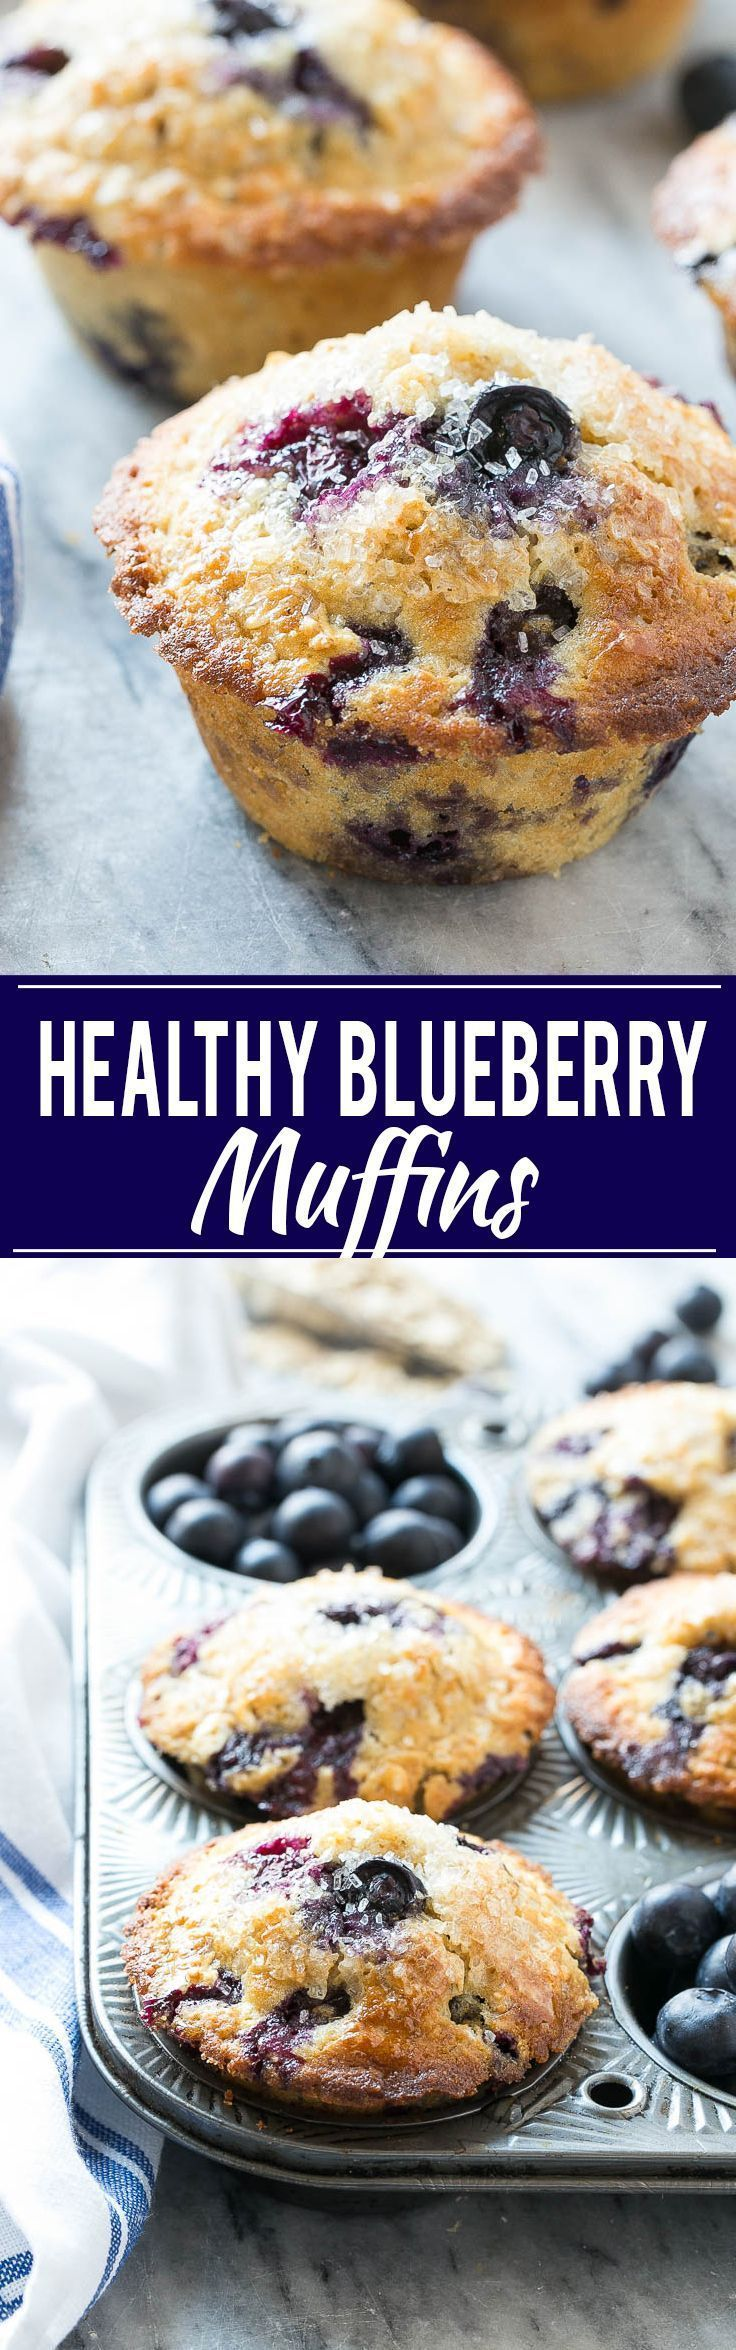 Healthy Blueberry Muffins - Made with whole wheat flour and oatmeal for added nutrition, but they still taste as good as the original version!